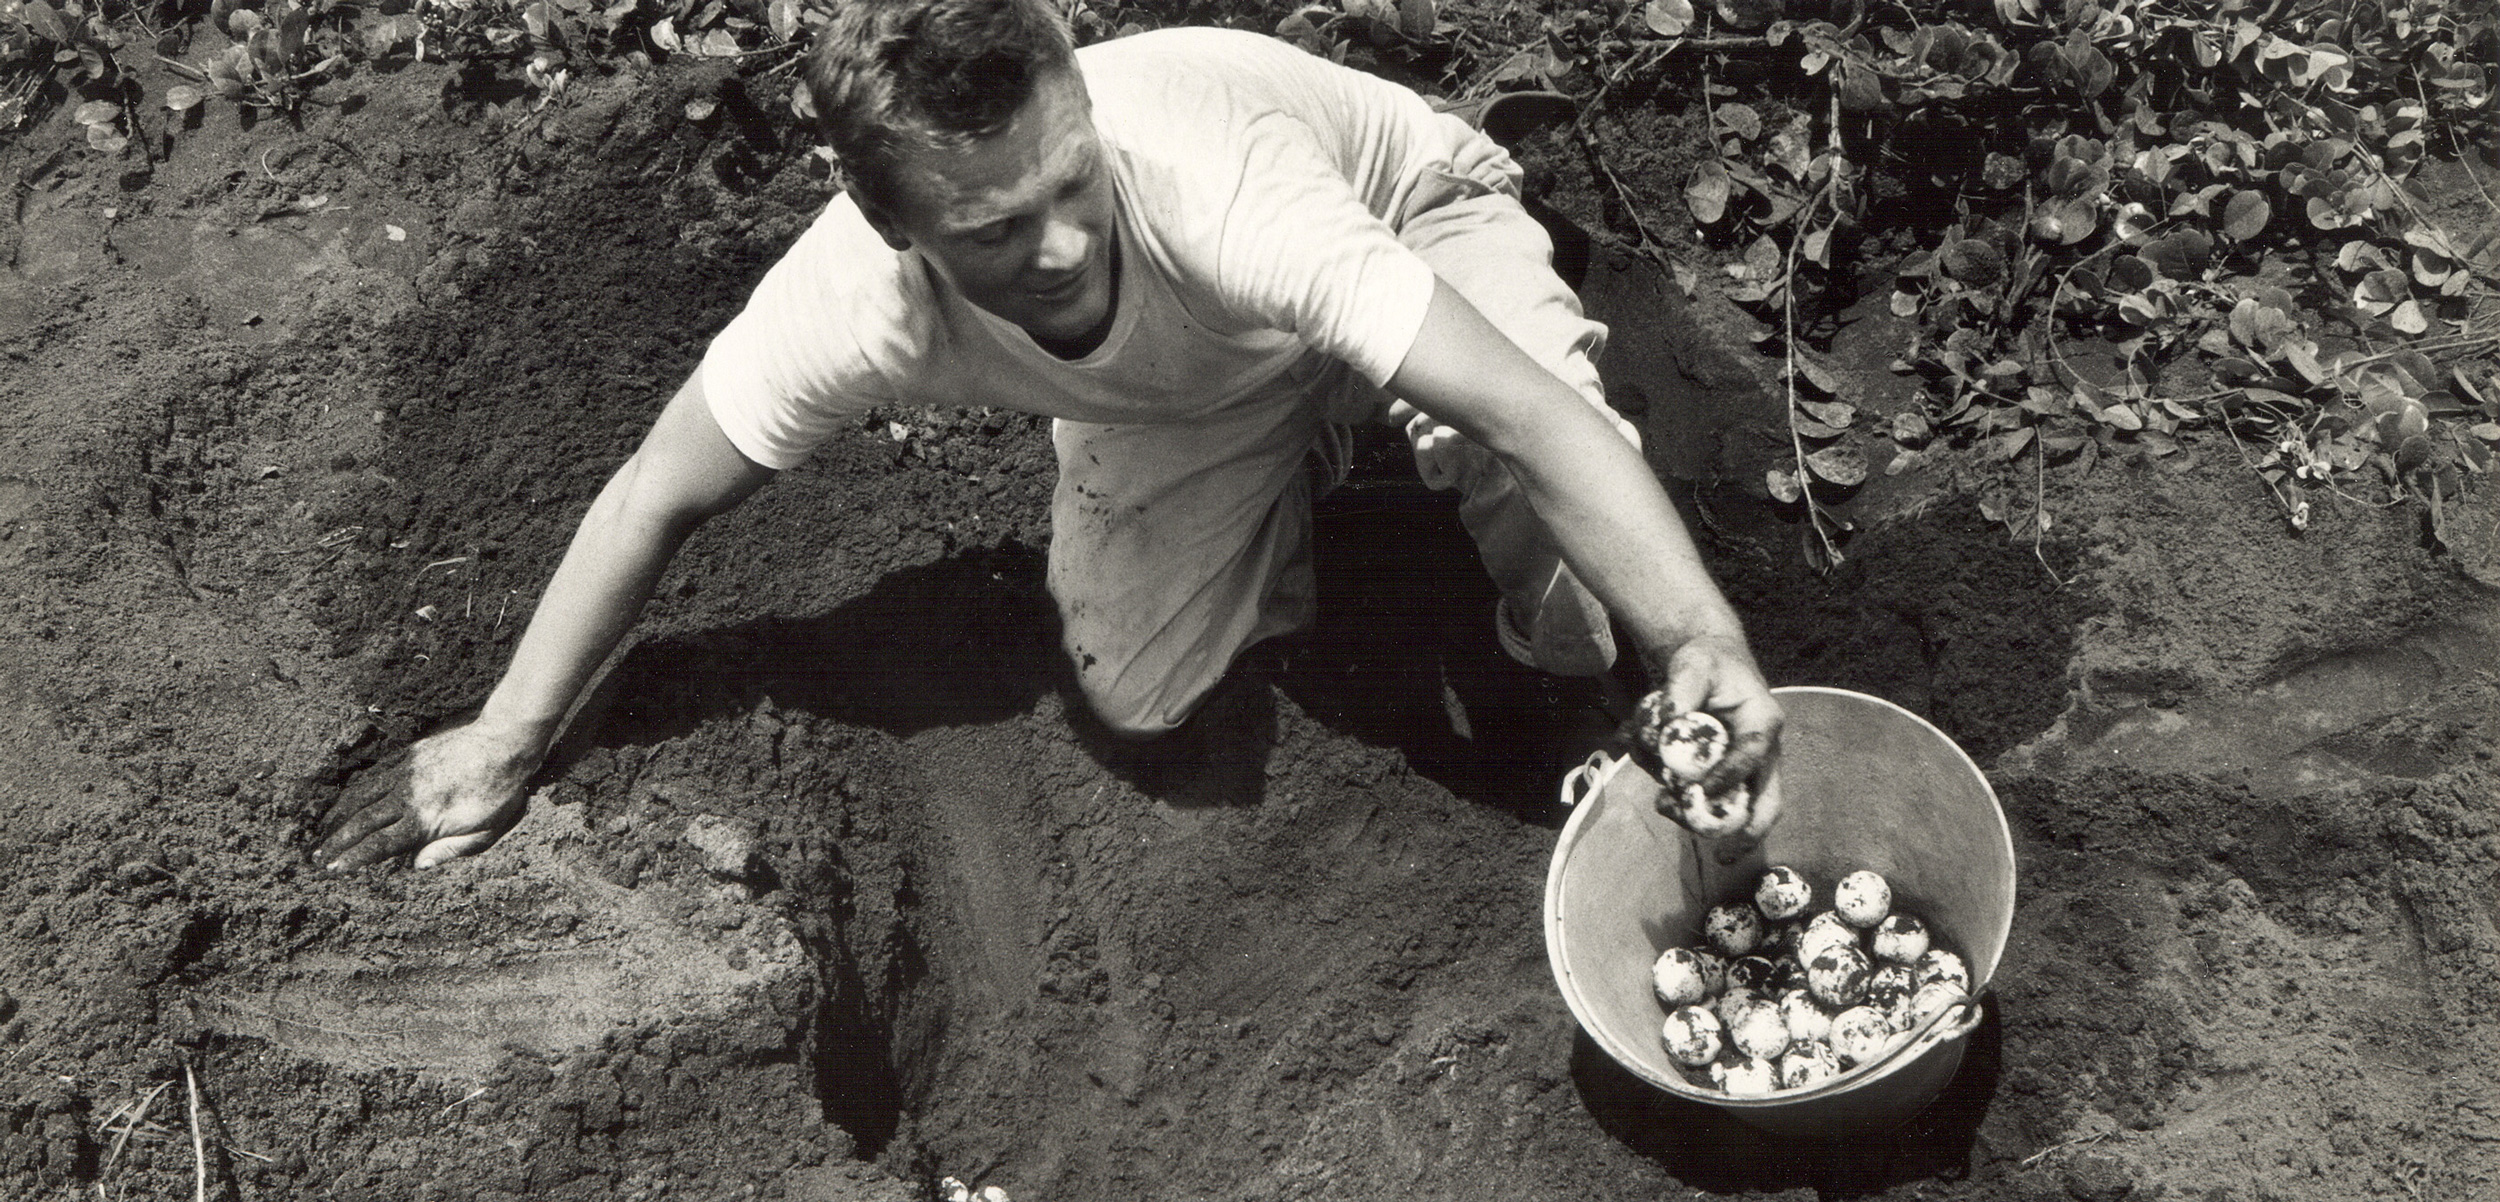 Larry Ogren, a staff member of the Caribbean Conservation Corporation (now known as the Sea Turtle Conservancy), collects eggs from a green turtle nest in Tortuguero, Costa Rica, in 1964 or 1965, as part of Operation Green Turtle. The resulting hatchlings were later relocated to various Caribbean destinations. Photo courtesy of conserveturtles.org